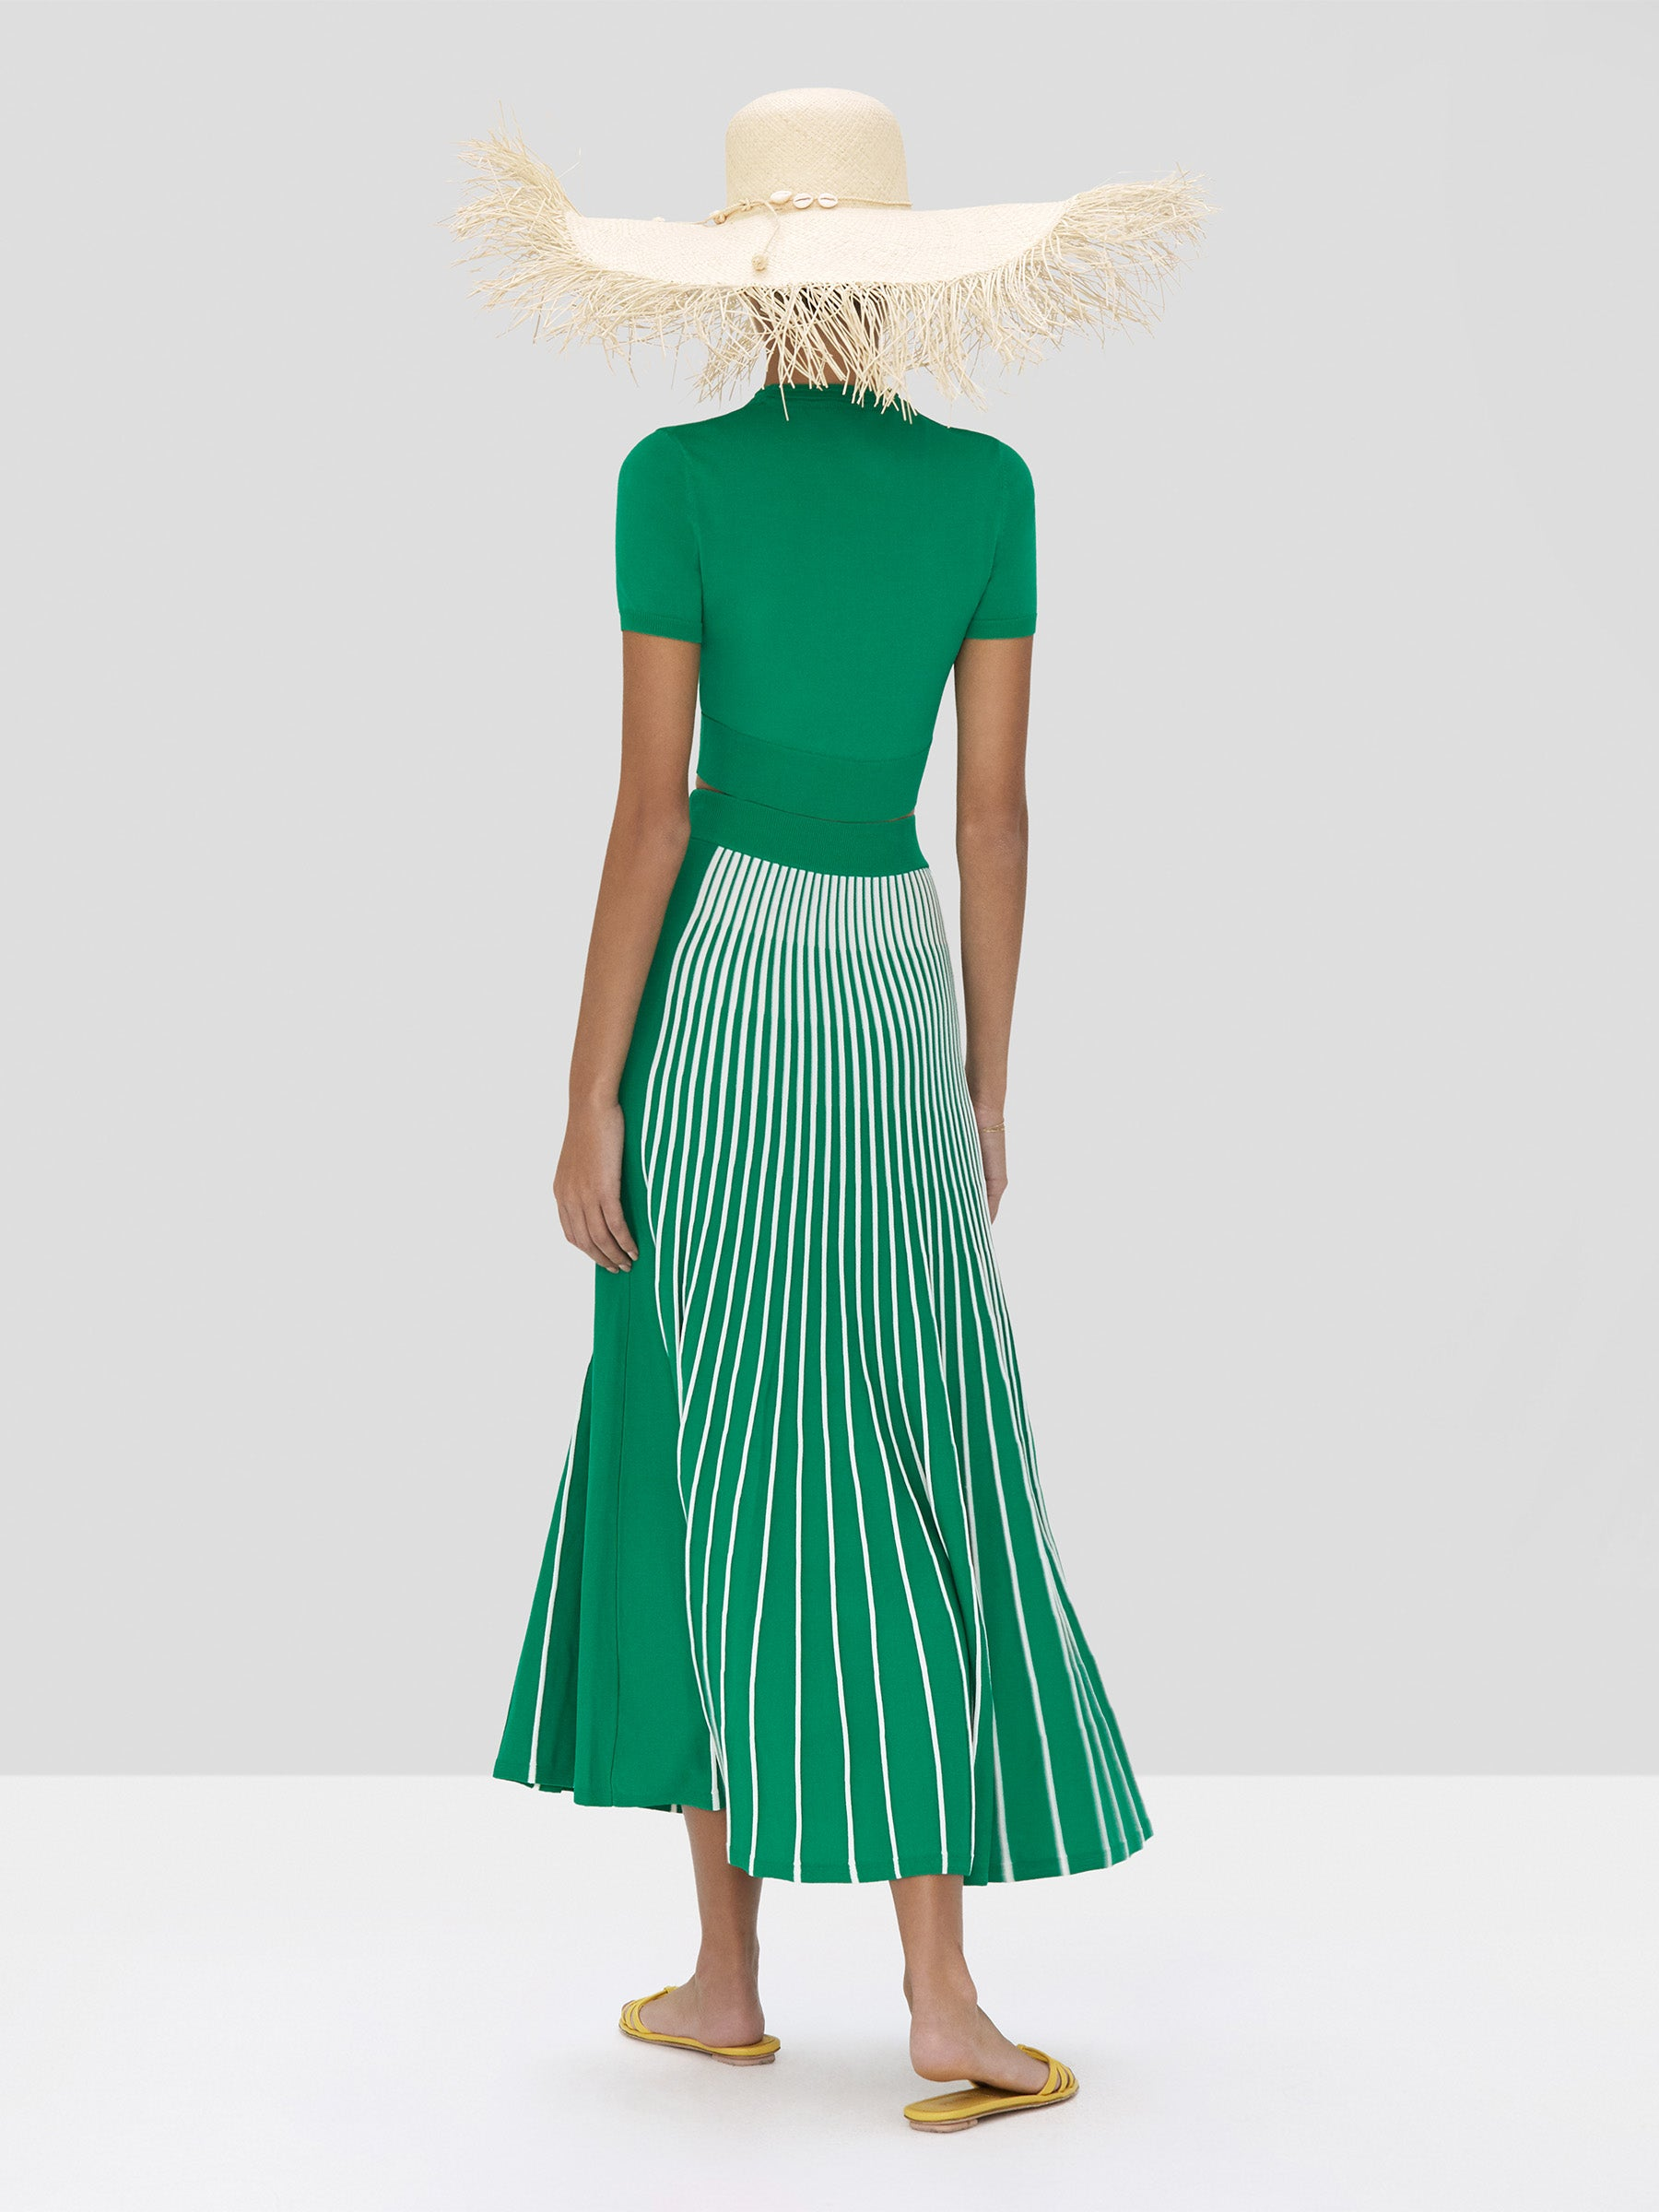 Alexis Finzi Crop Top in Green and Vani Skirt in Green and White Stripes from Spring Summer 2020  - Rear View